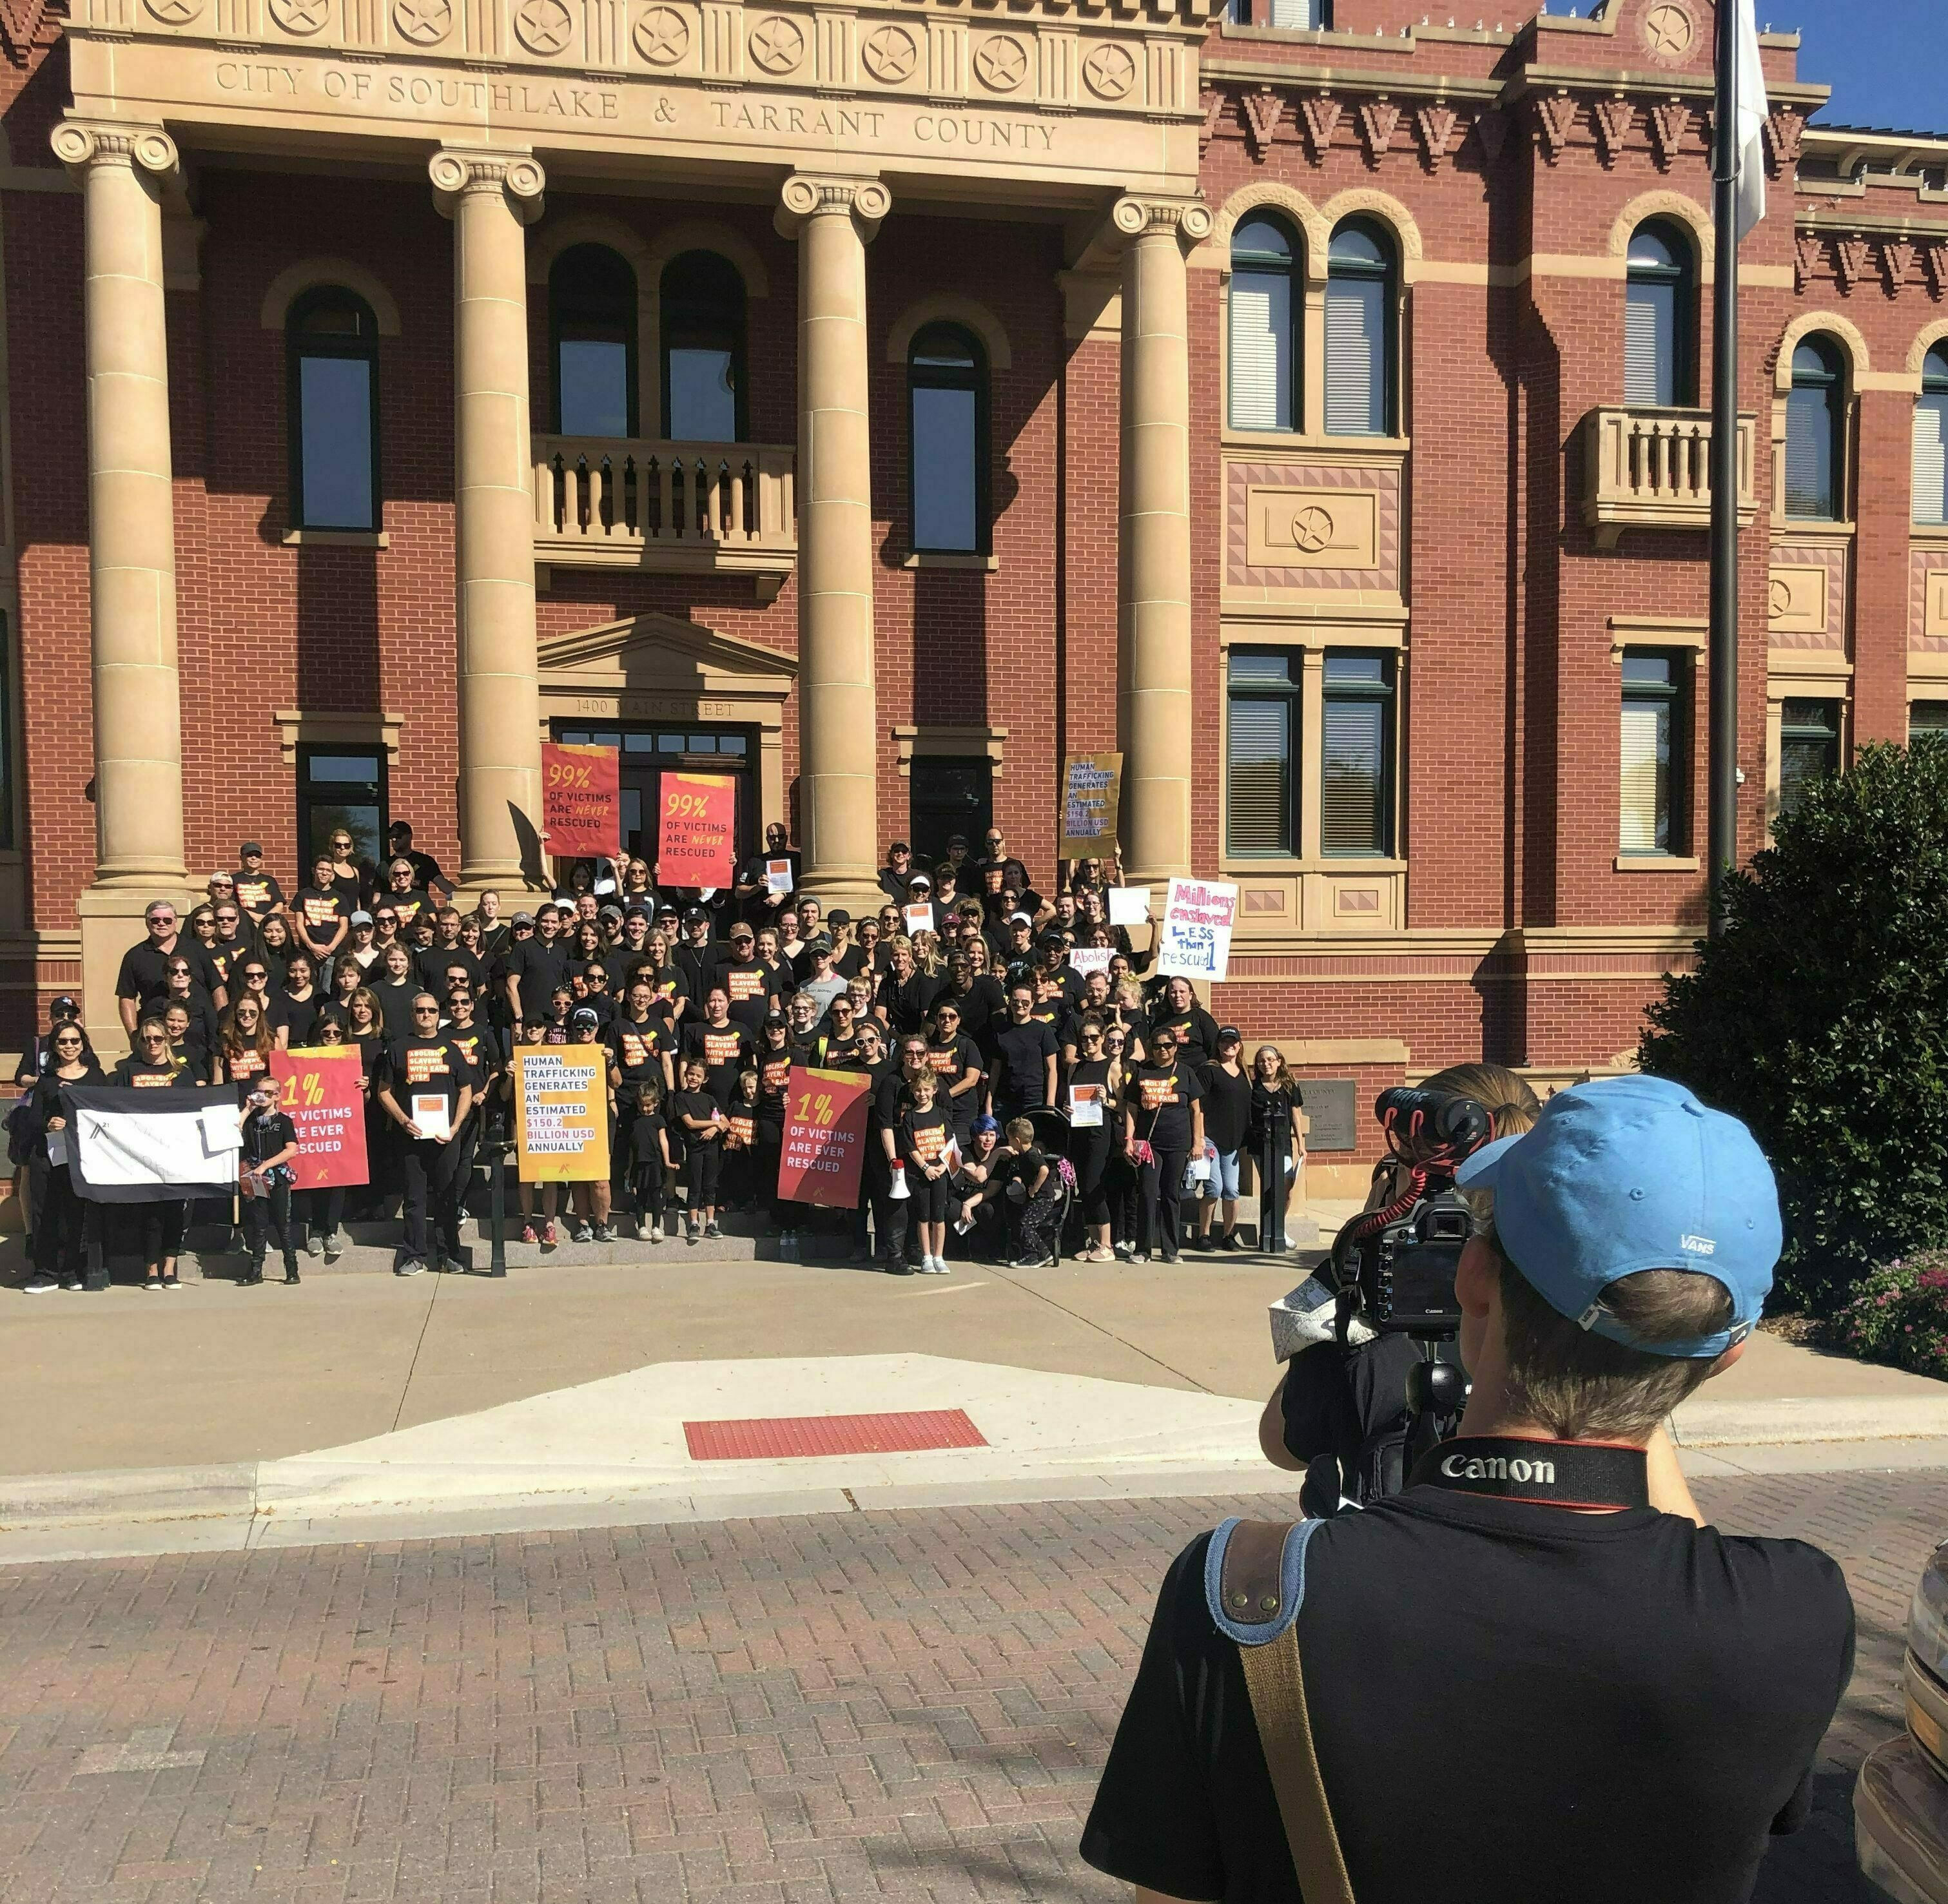 a21 walk for freedom, end human trafficking, video project, filming, court house, protest